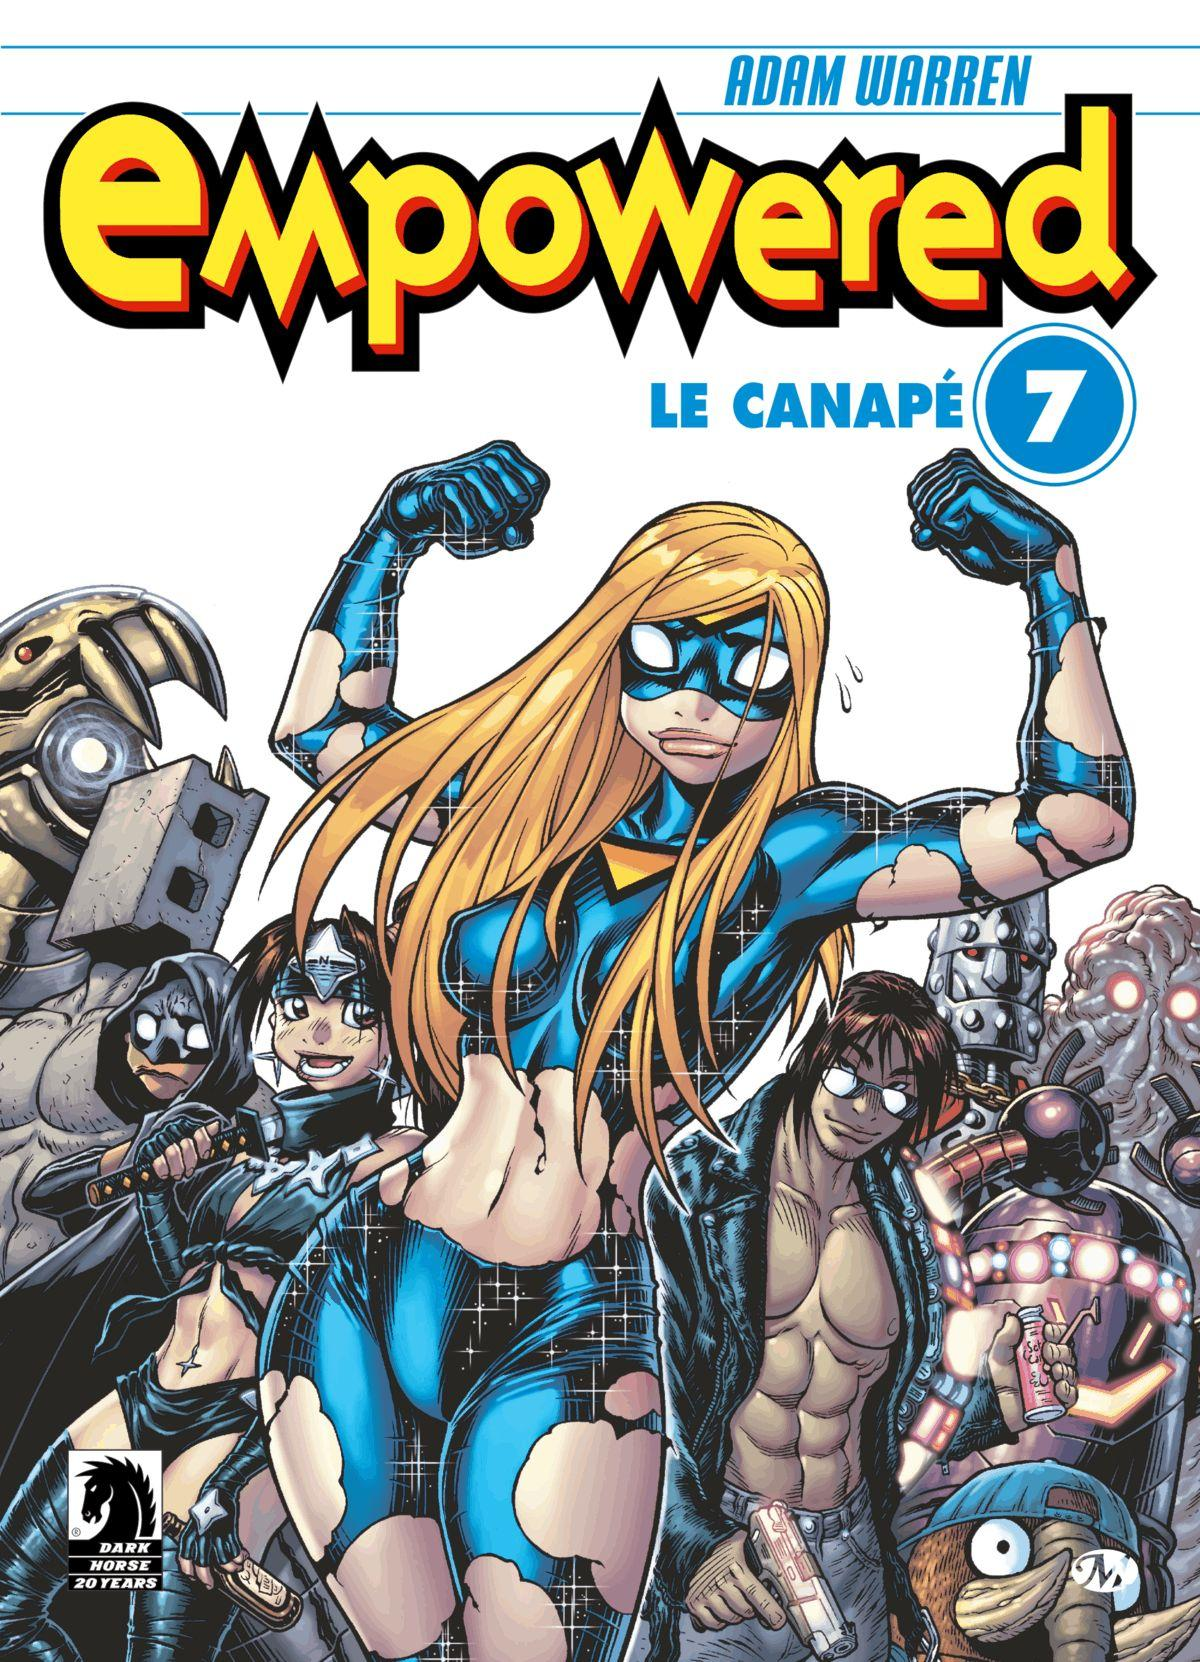 Empowered #7 : Le Canapé, EMPOWERED, T7